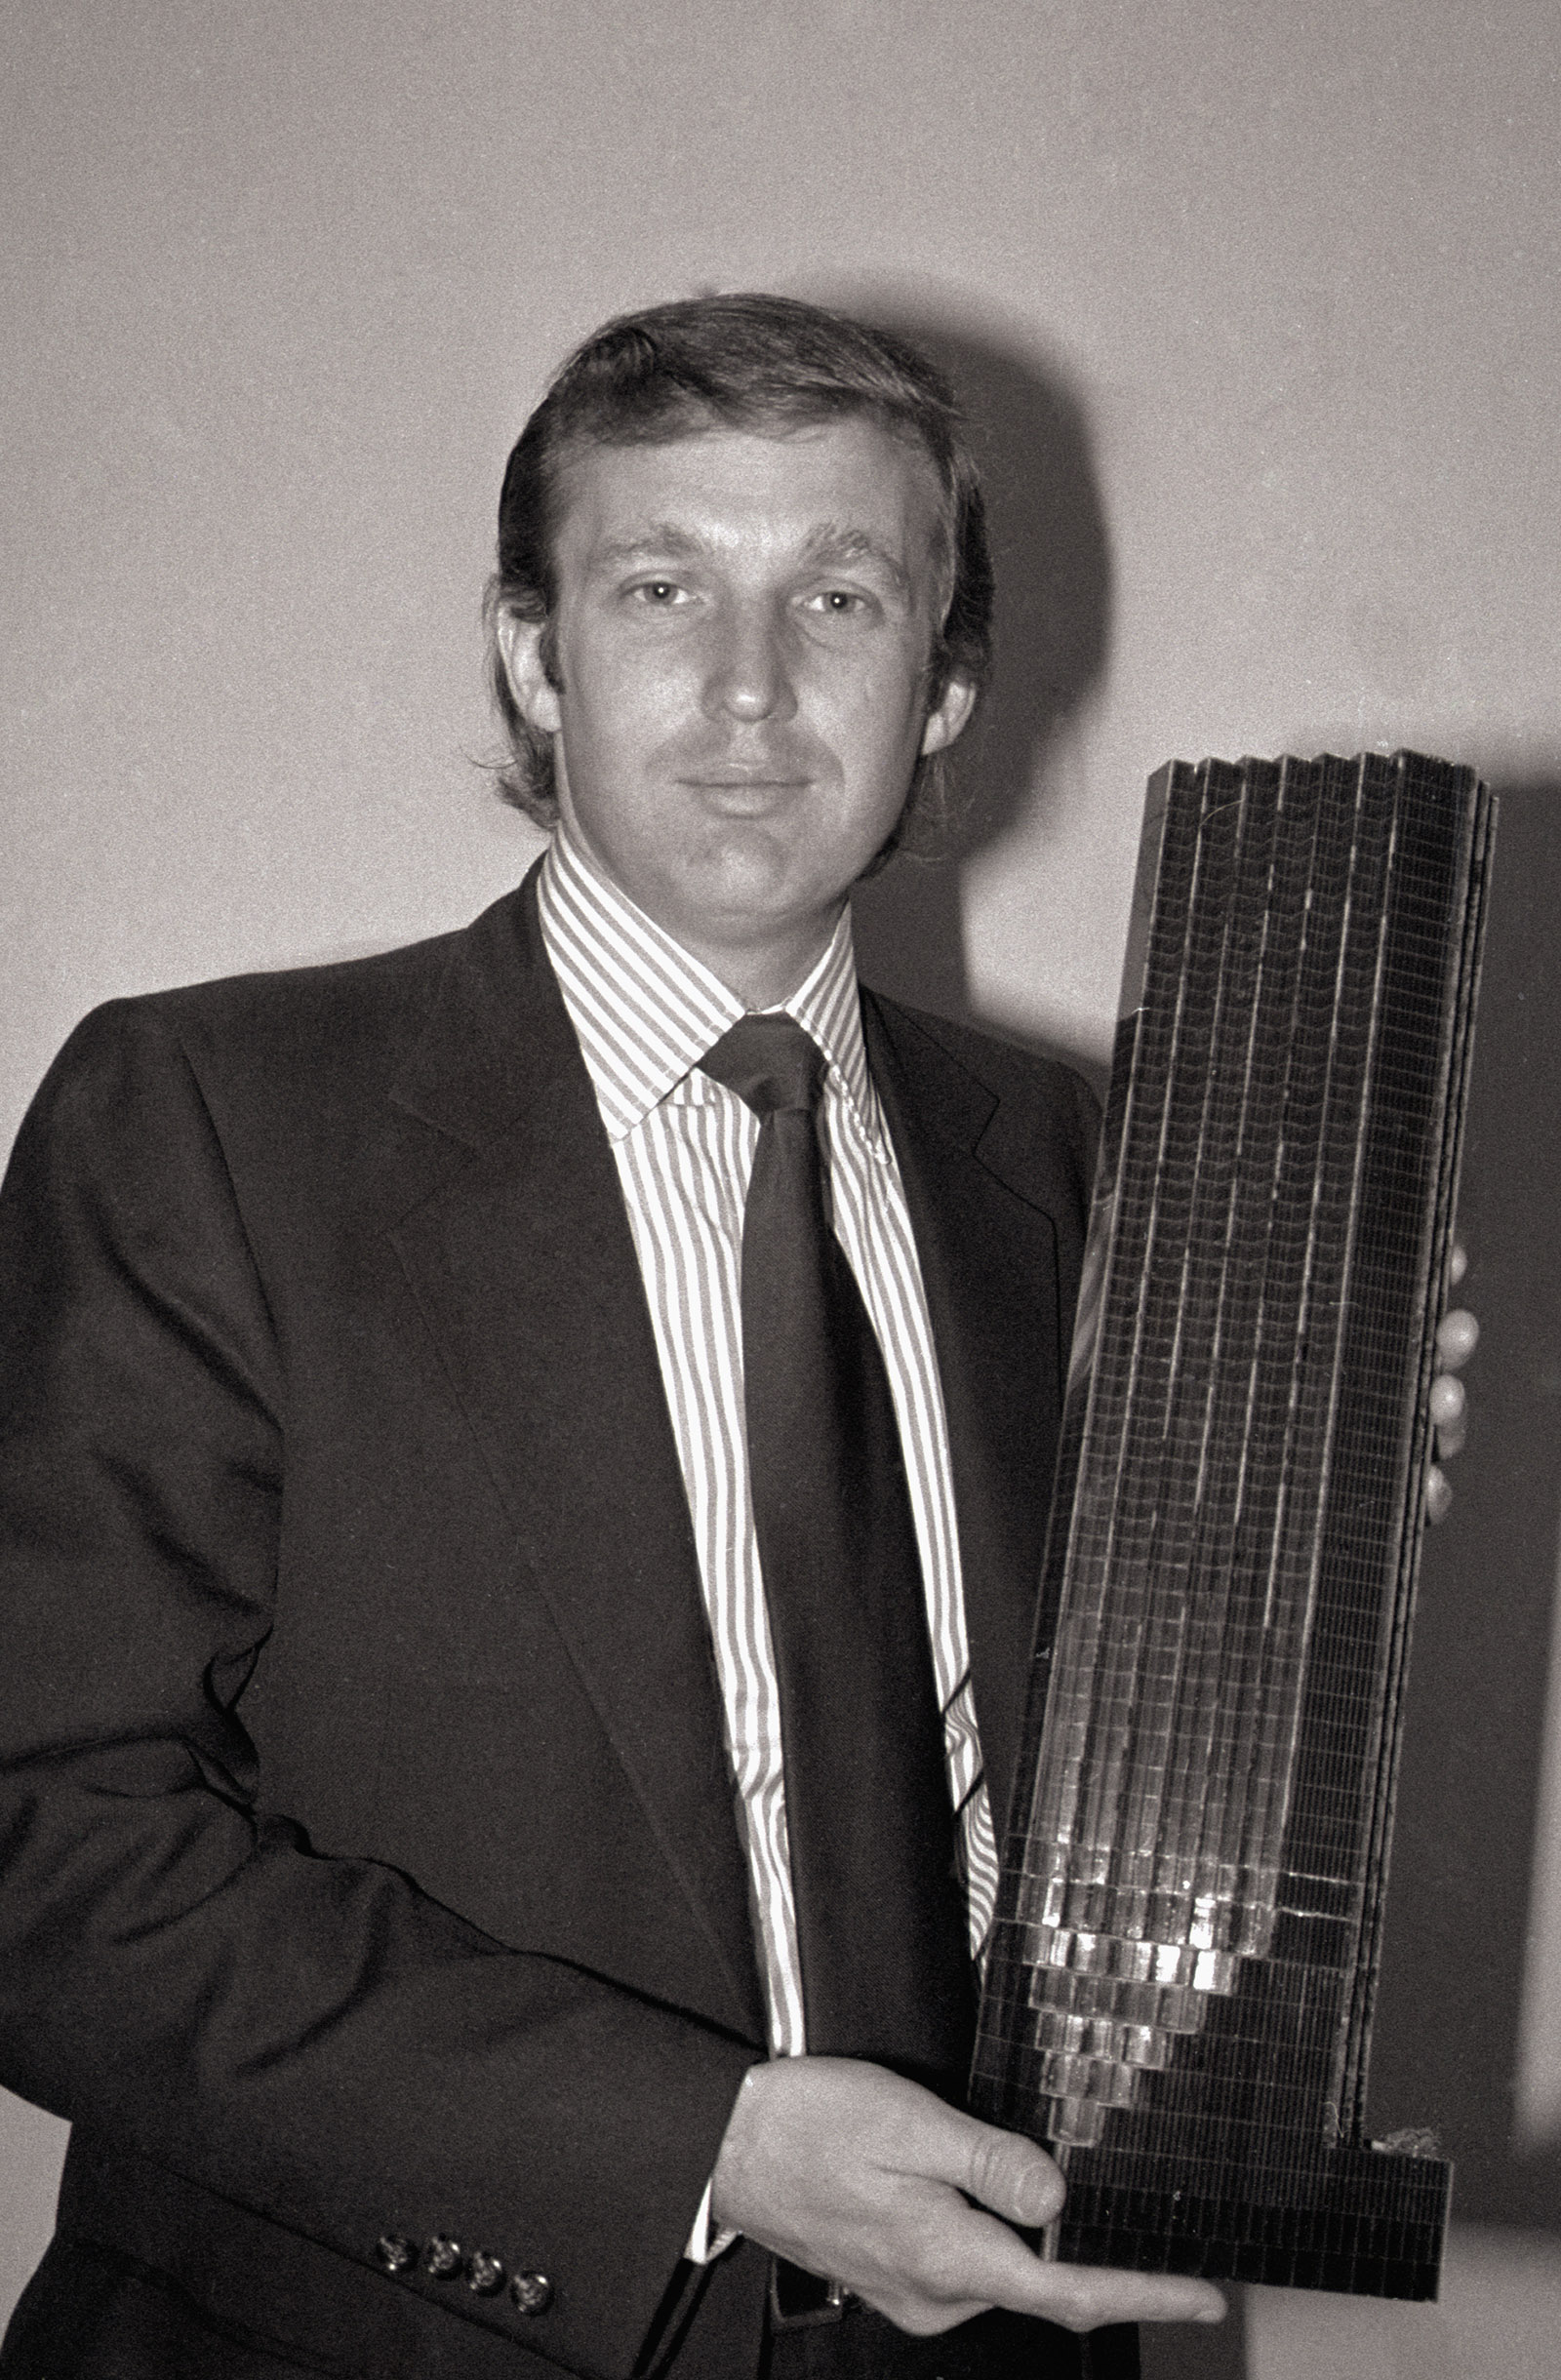 Donald Trump holding model of tower